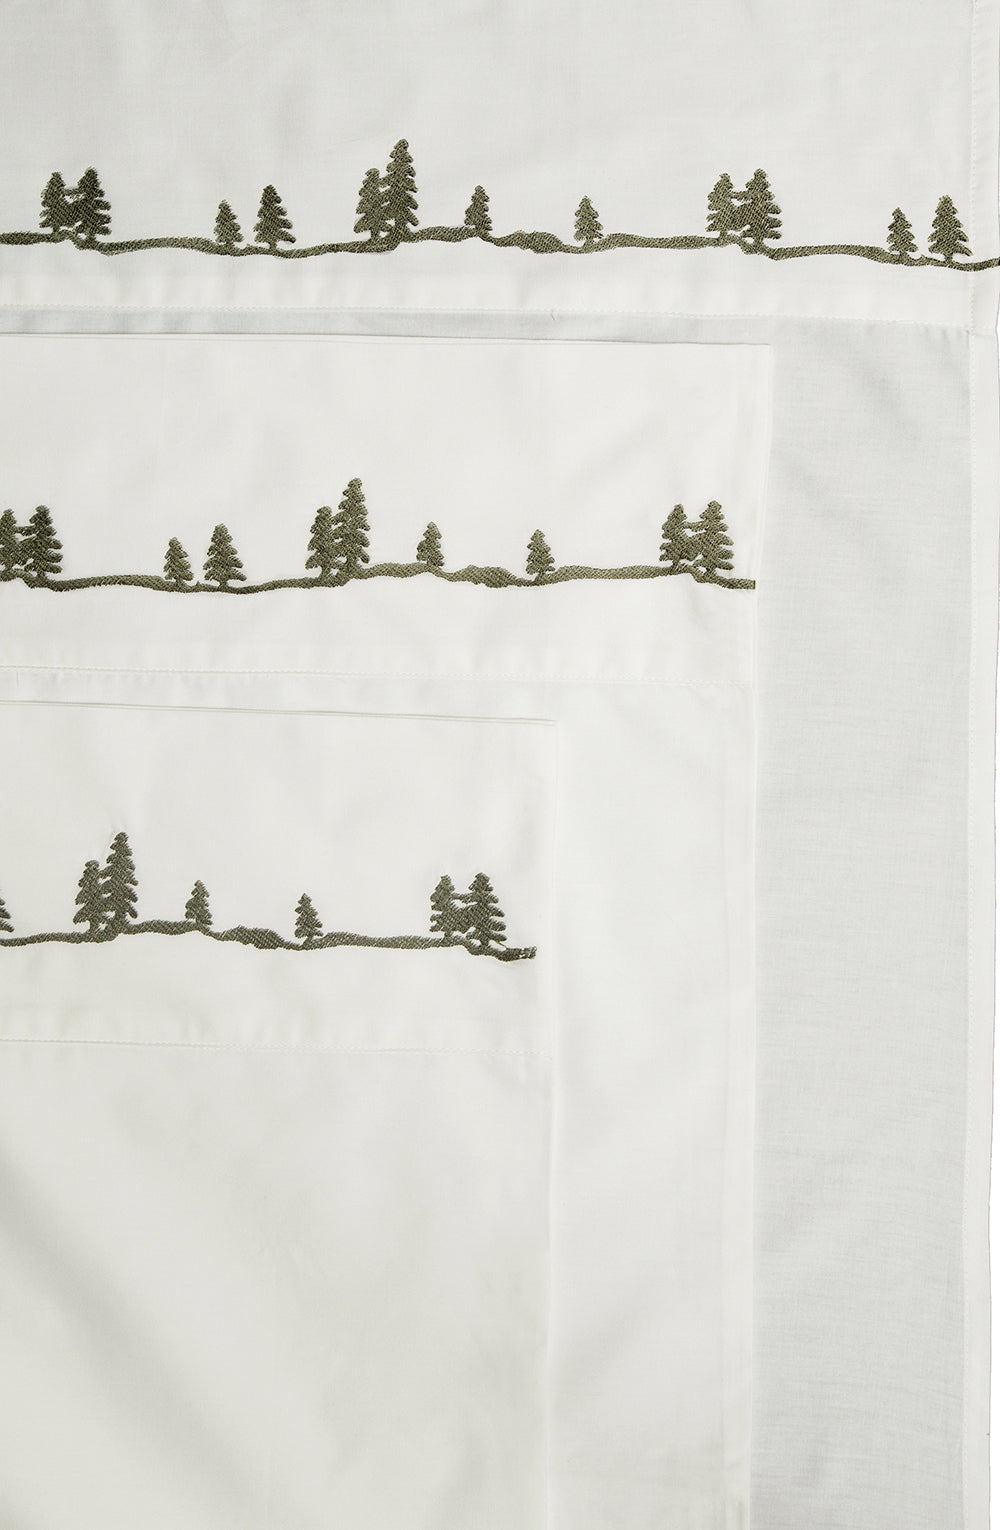 Embroidered Pines Sheet Set 100% Cotton